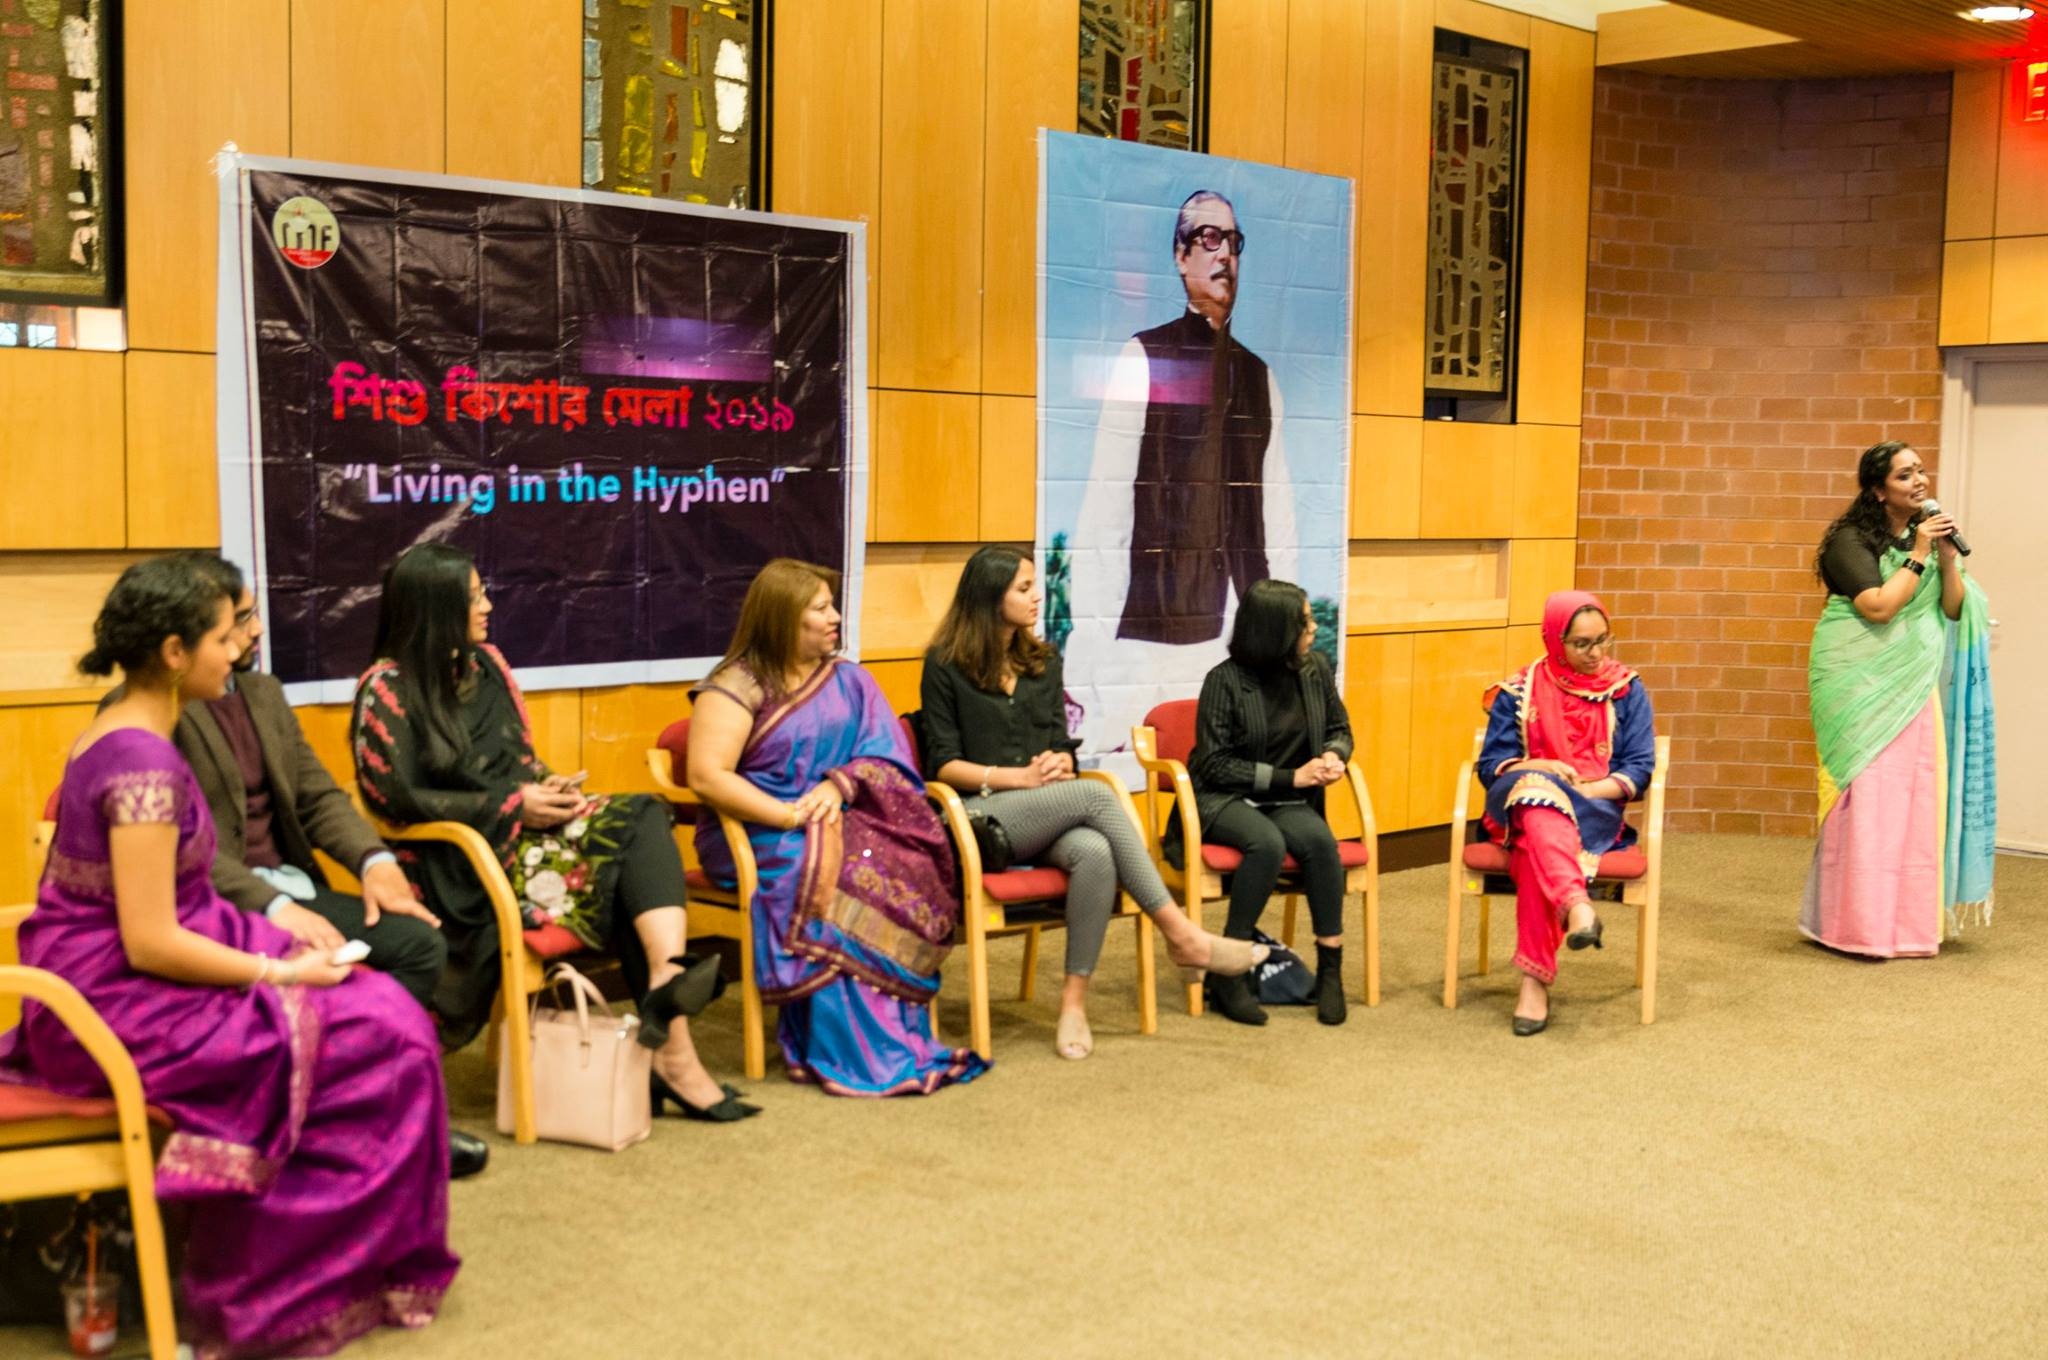 2020-ypf-panel-discussion-photo-by-wasi-ferdous-55576201